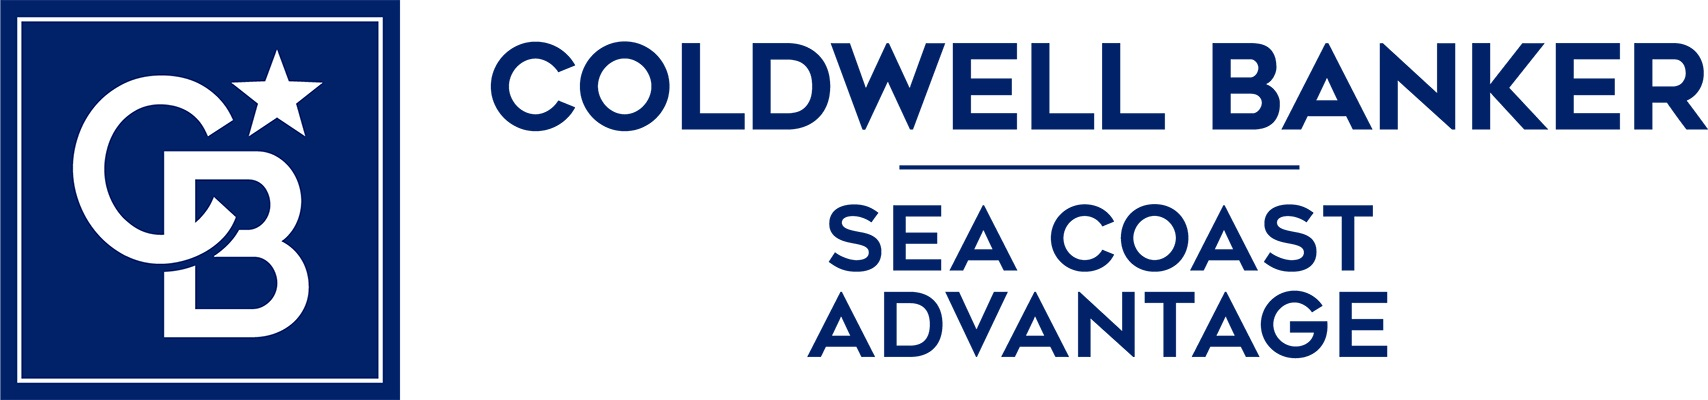 Shelbi Micciche - Coldwell Banker Sea Coast Advantage Realty